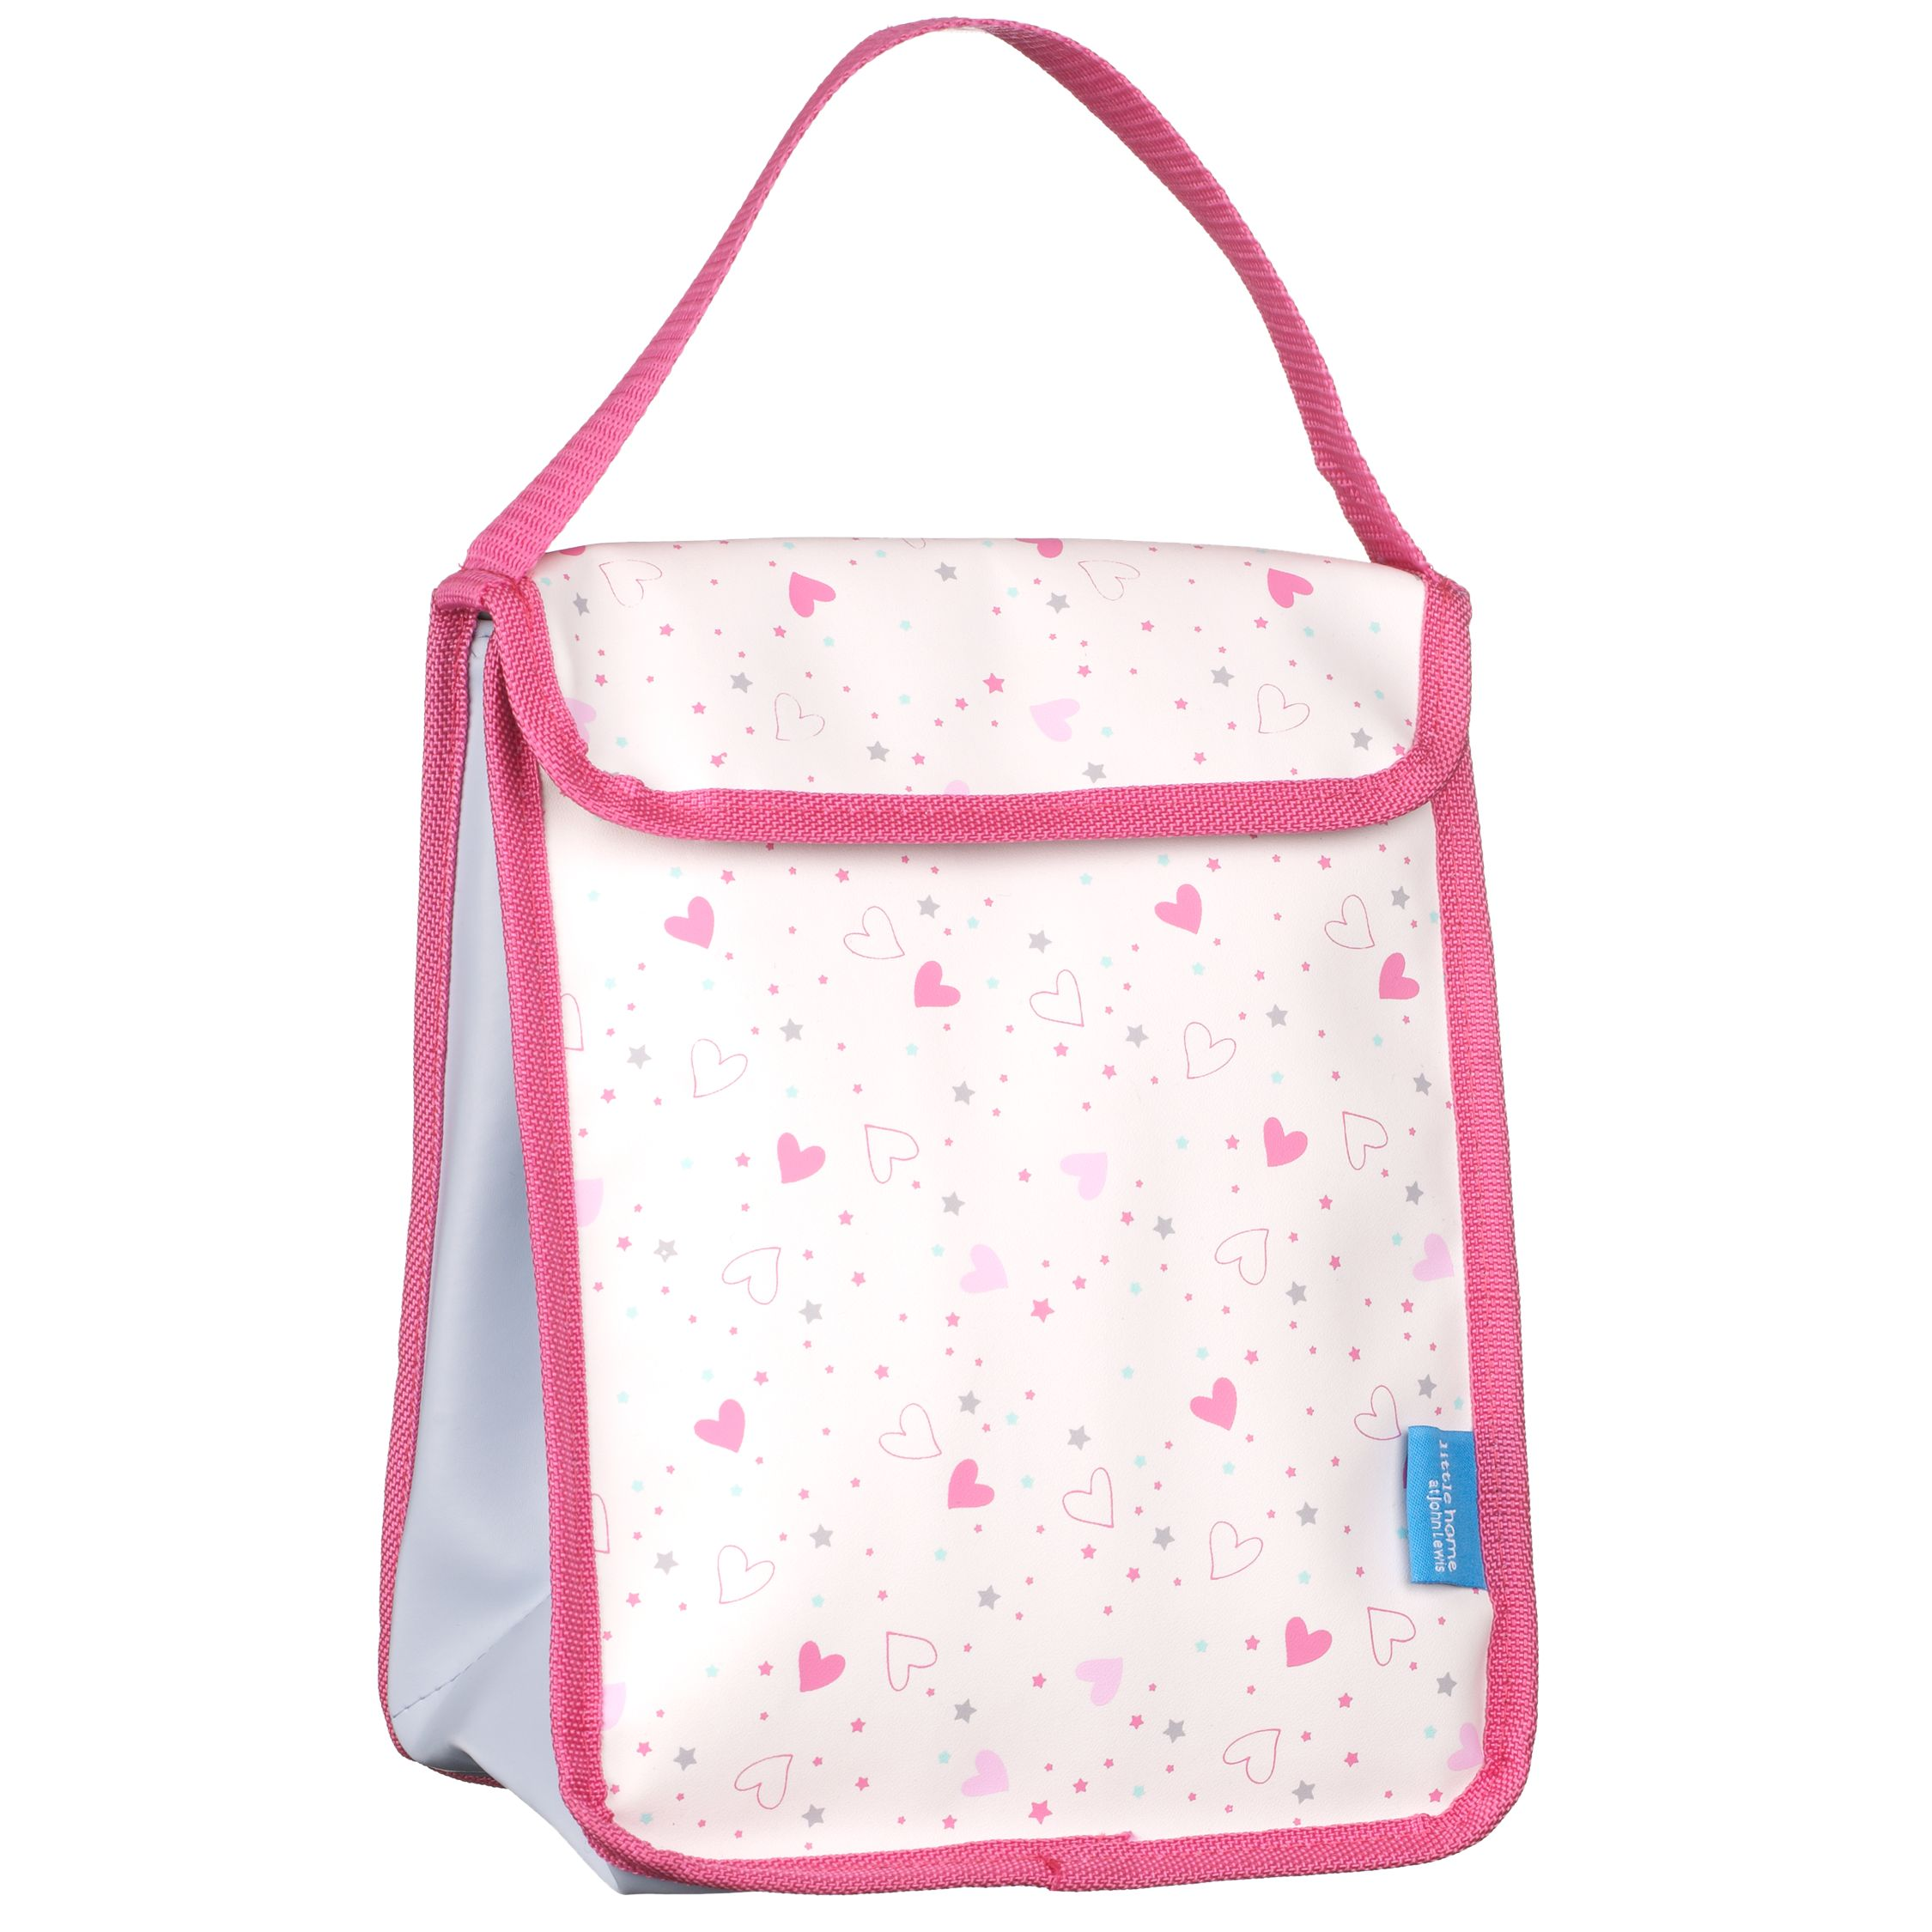 little home at John Lewis, Make a Wish, Insulated Lunch Bag